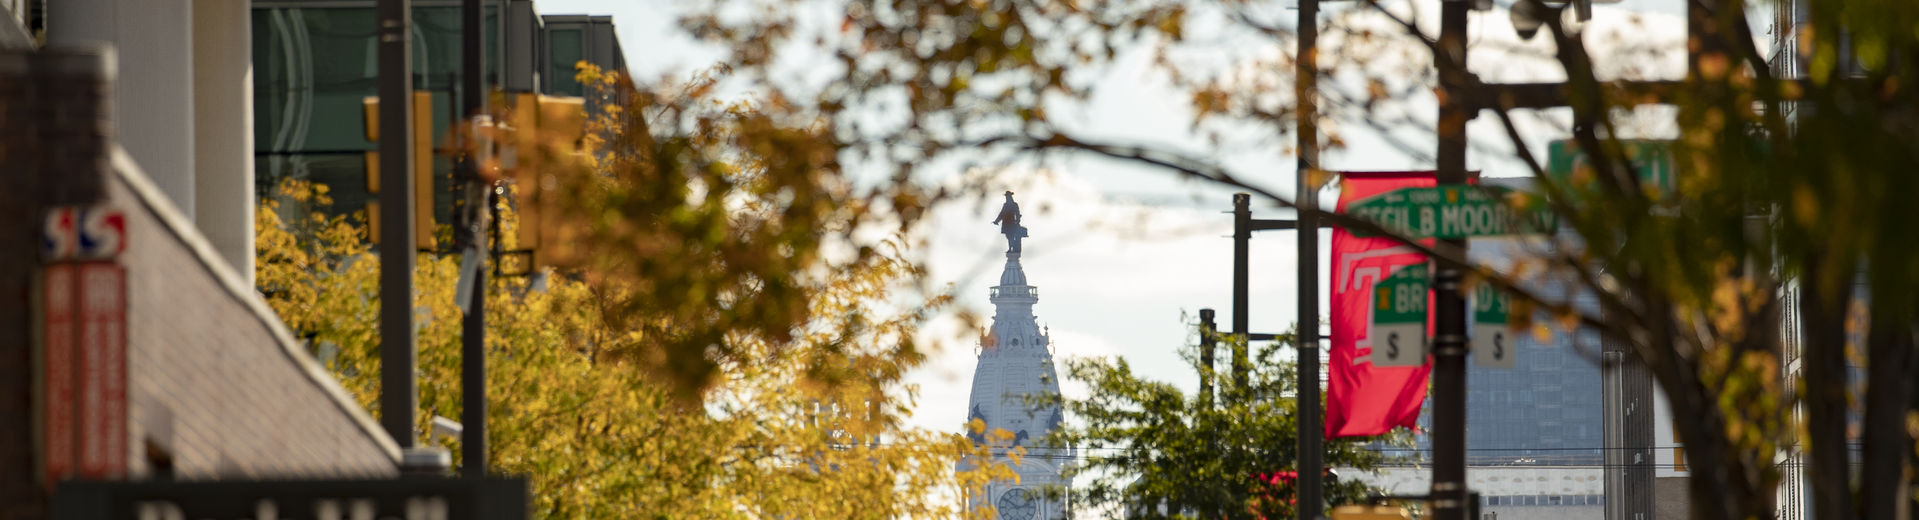 Main Campus on a fall day with Philadelphia City Hall in the background